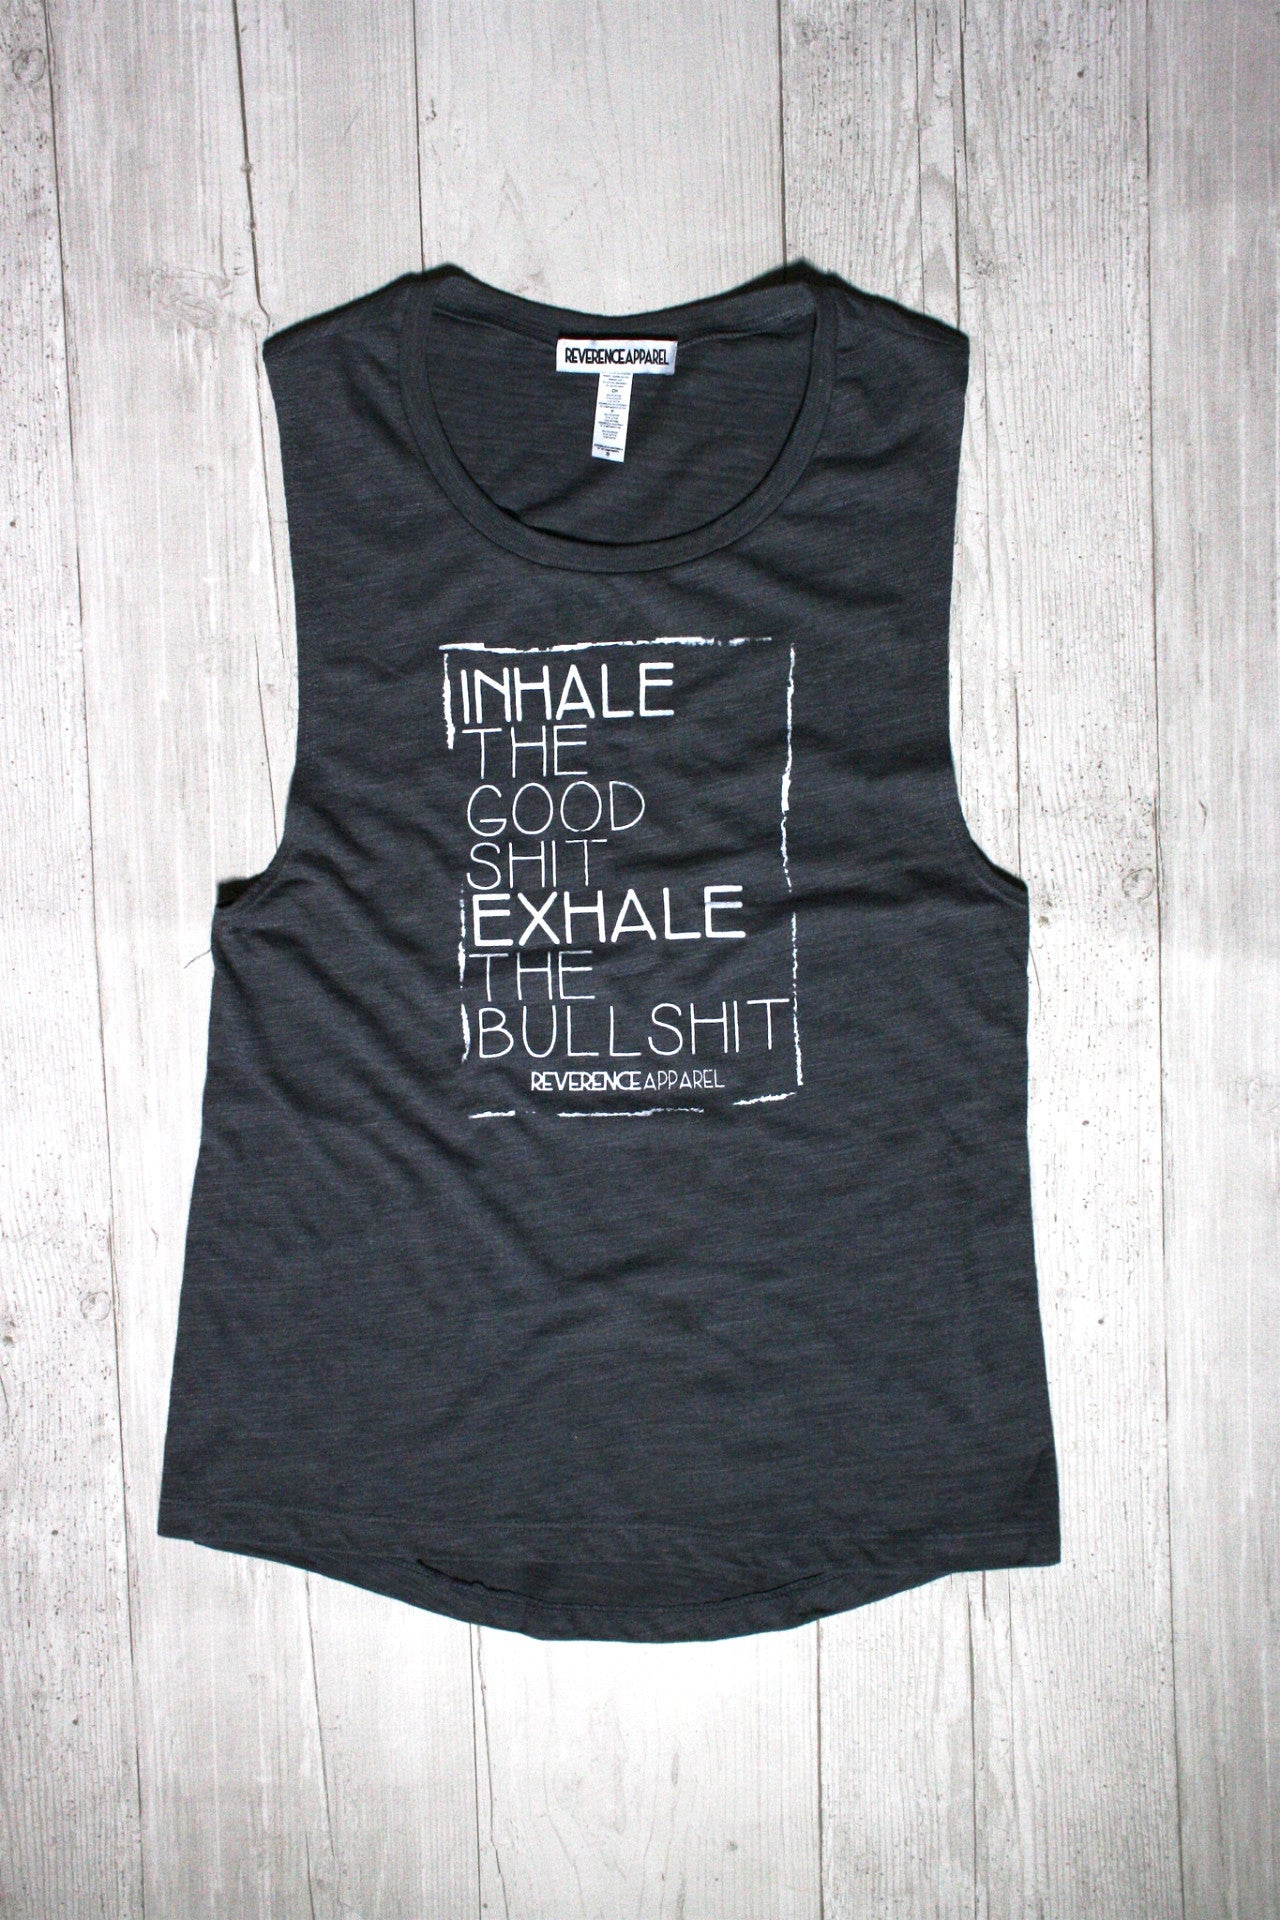 INHALE THE GOOD SHIT EXHALE THE BULLSHIT MUSCLE GRAPHIC TEE REVERENCE APPAREL